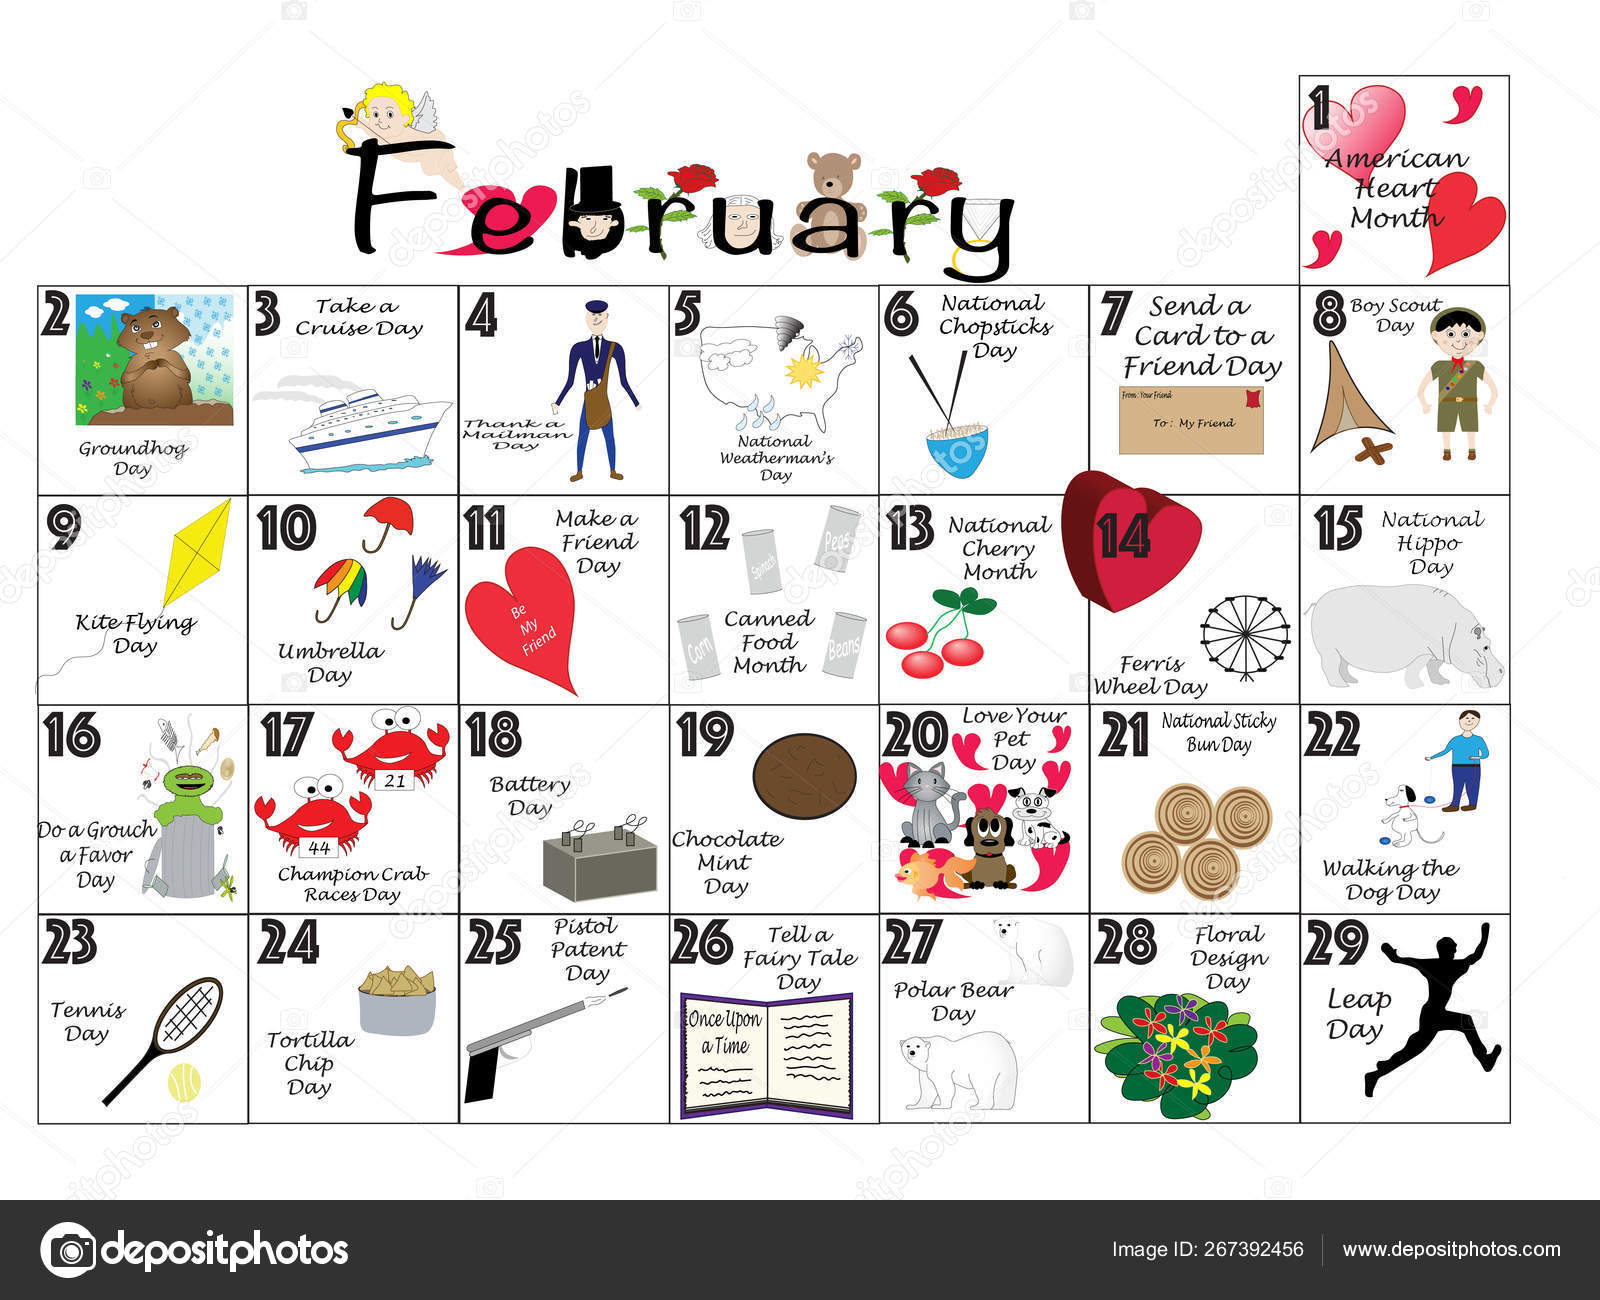 February 2020 Quirky Holidays And Unusual Celebrations with February 2020 Daily Calendar